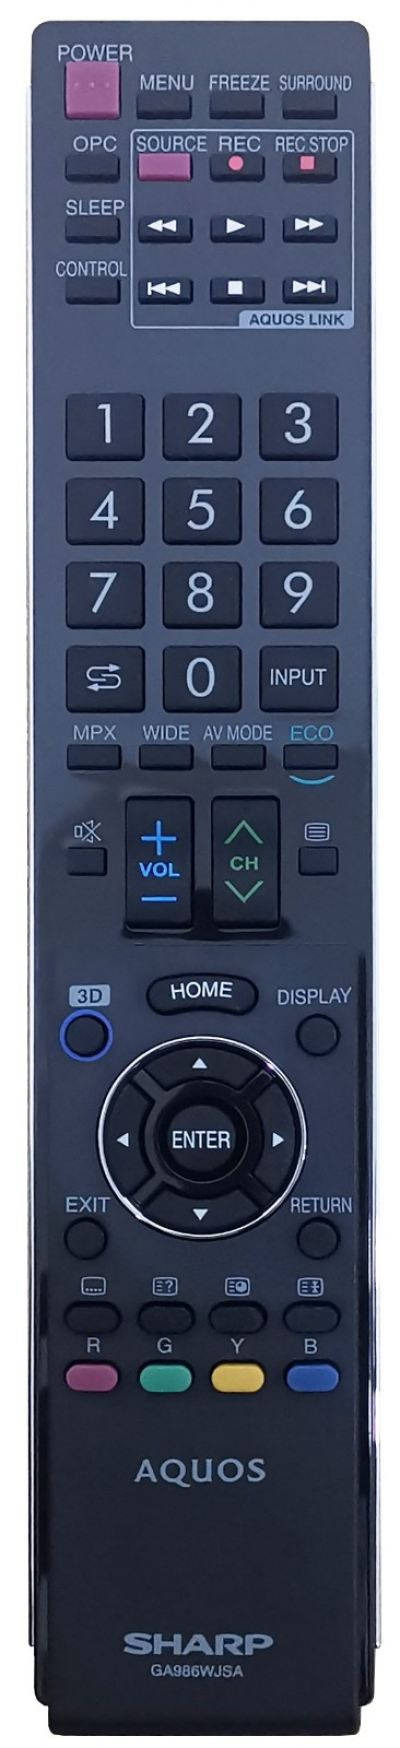 GA986WJSA SHARP SMART LED TV REMOTE CONTROL